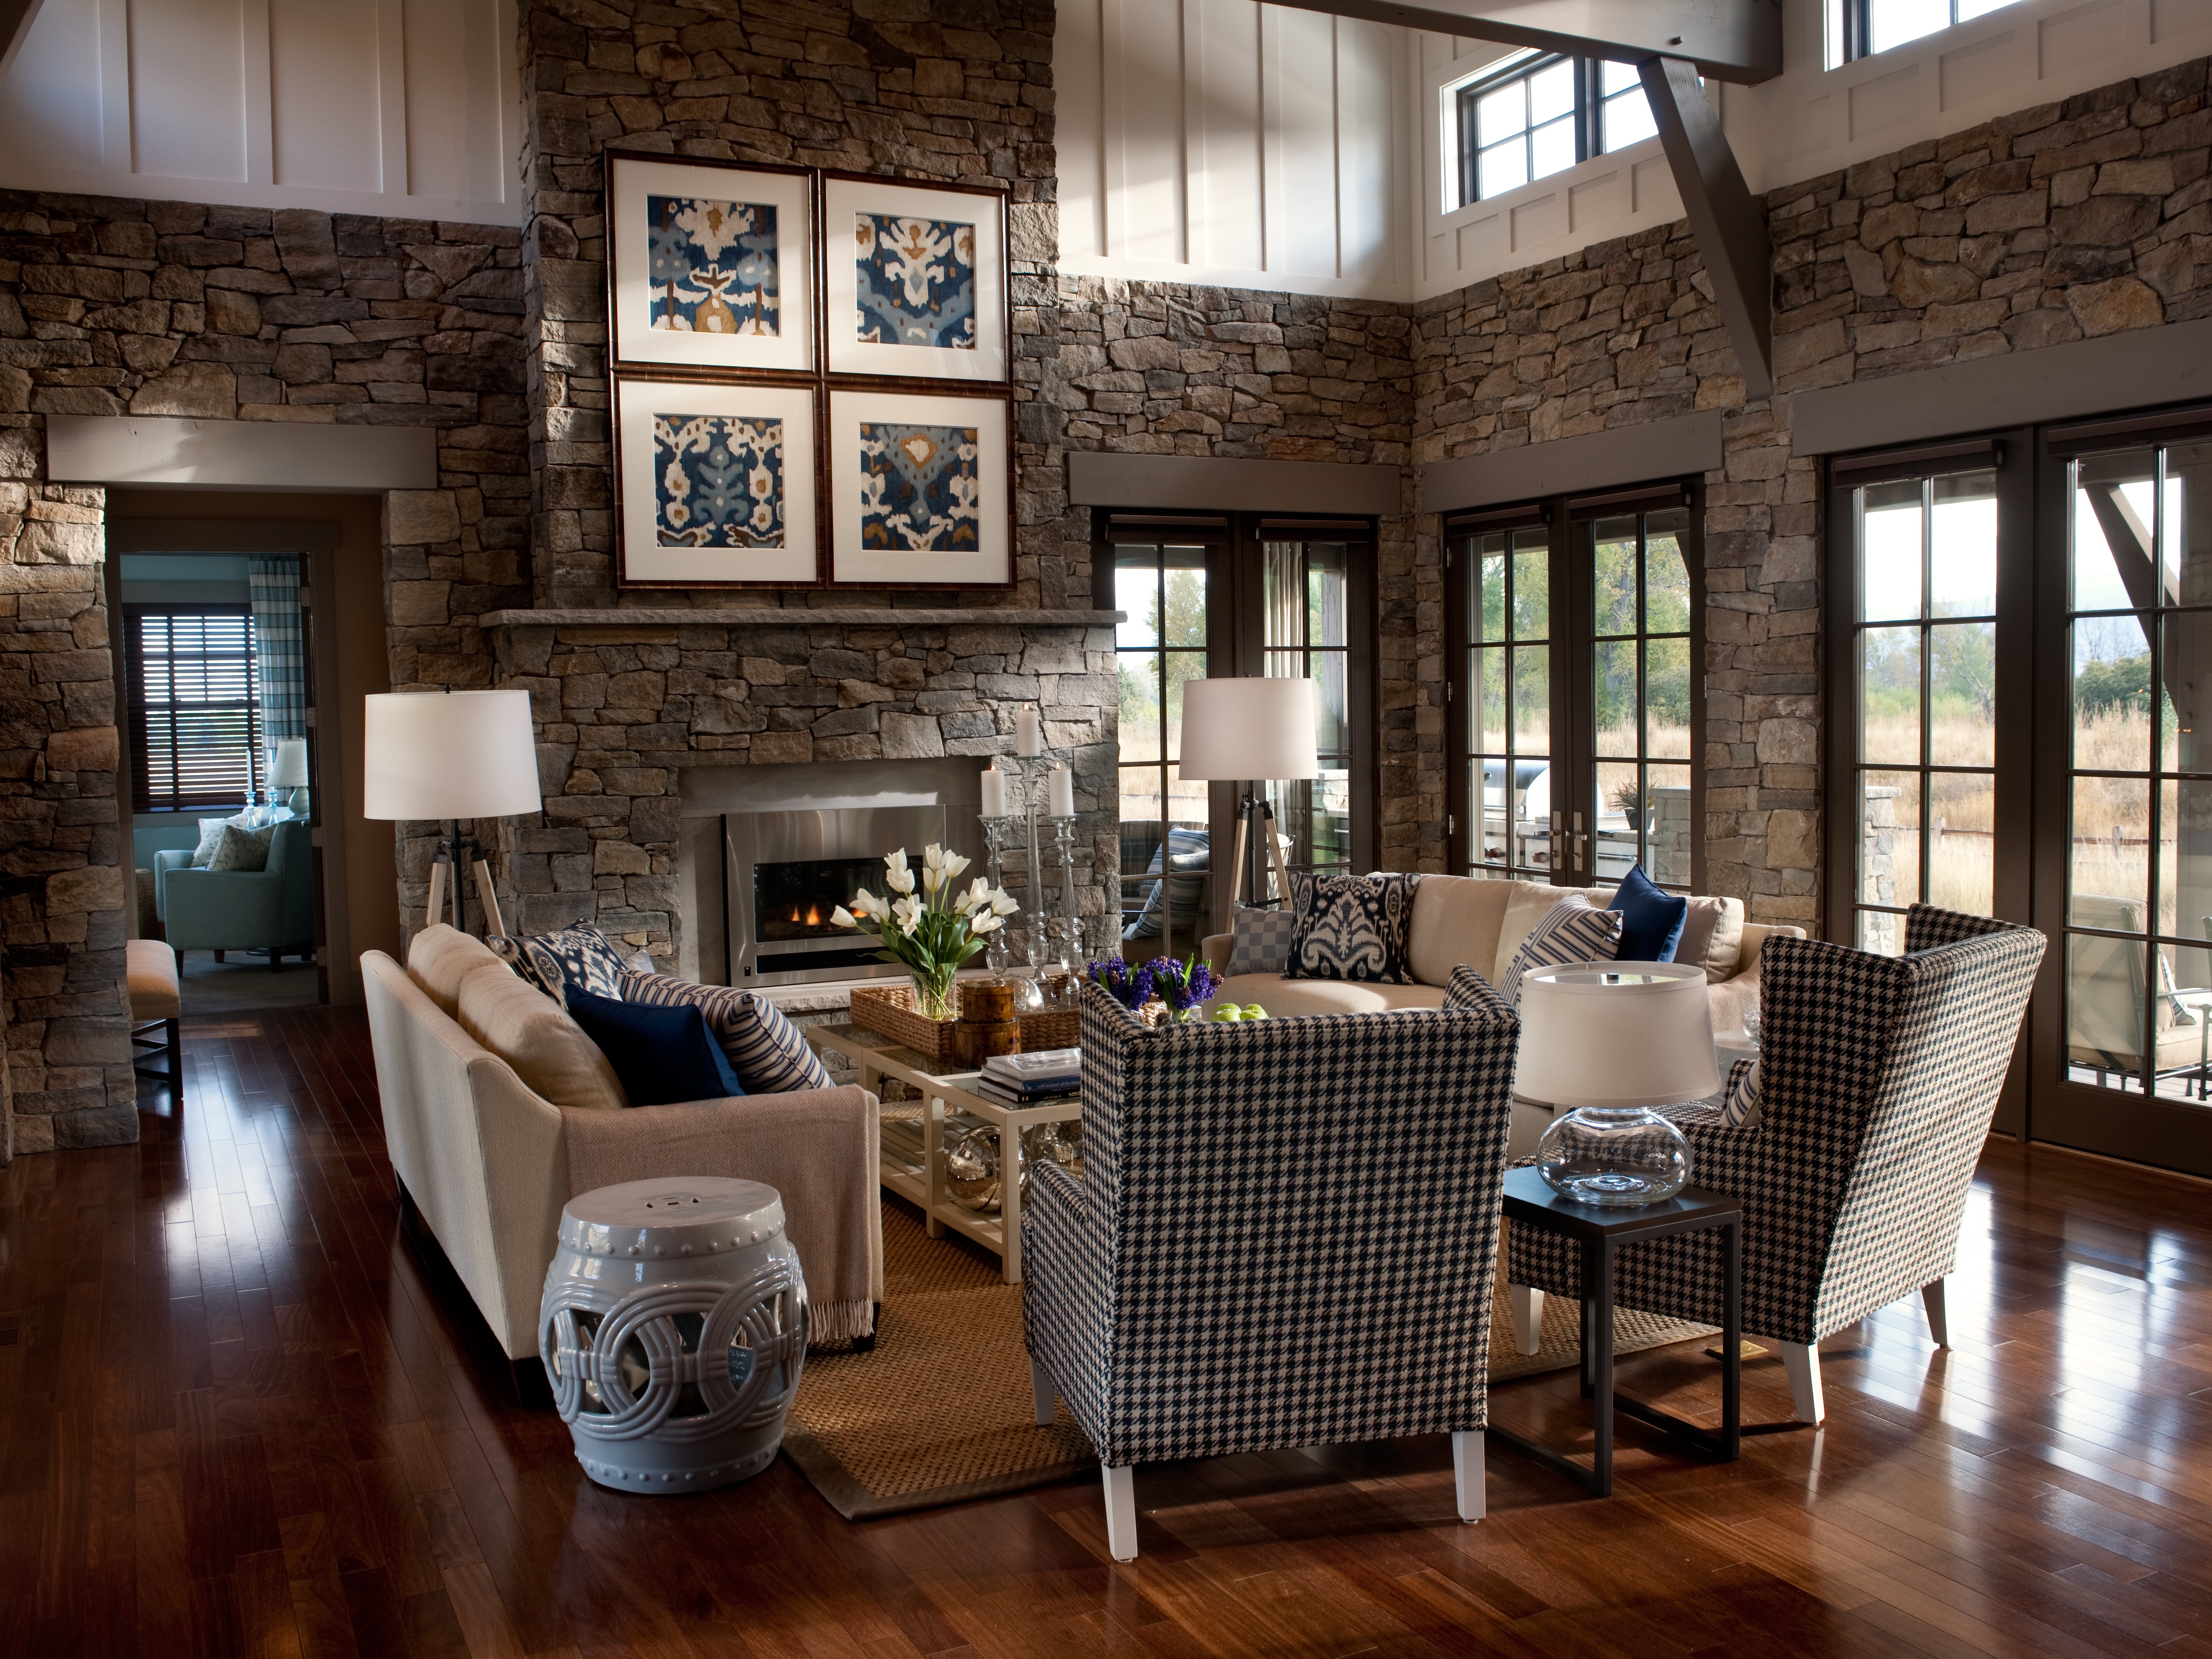 Classic Western Living Room With Stone Walls (View 6 of 18)